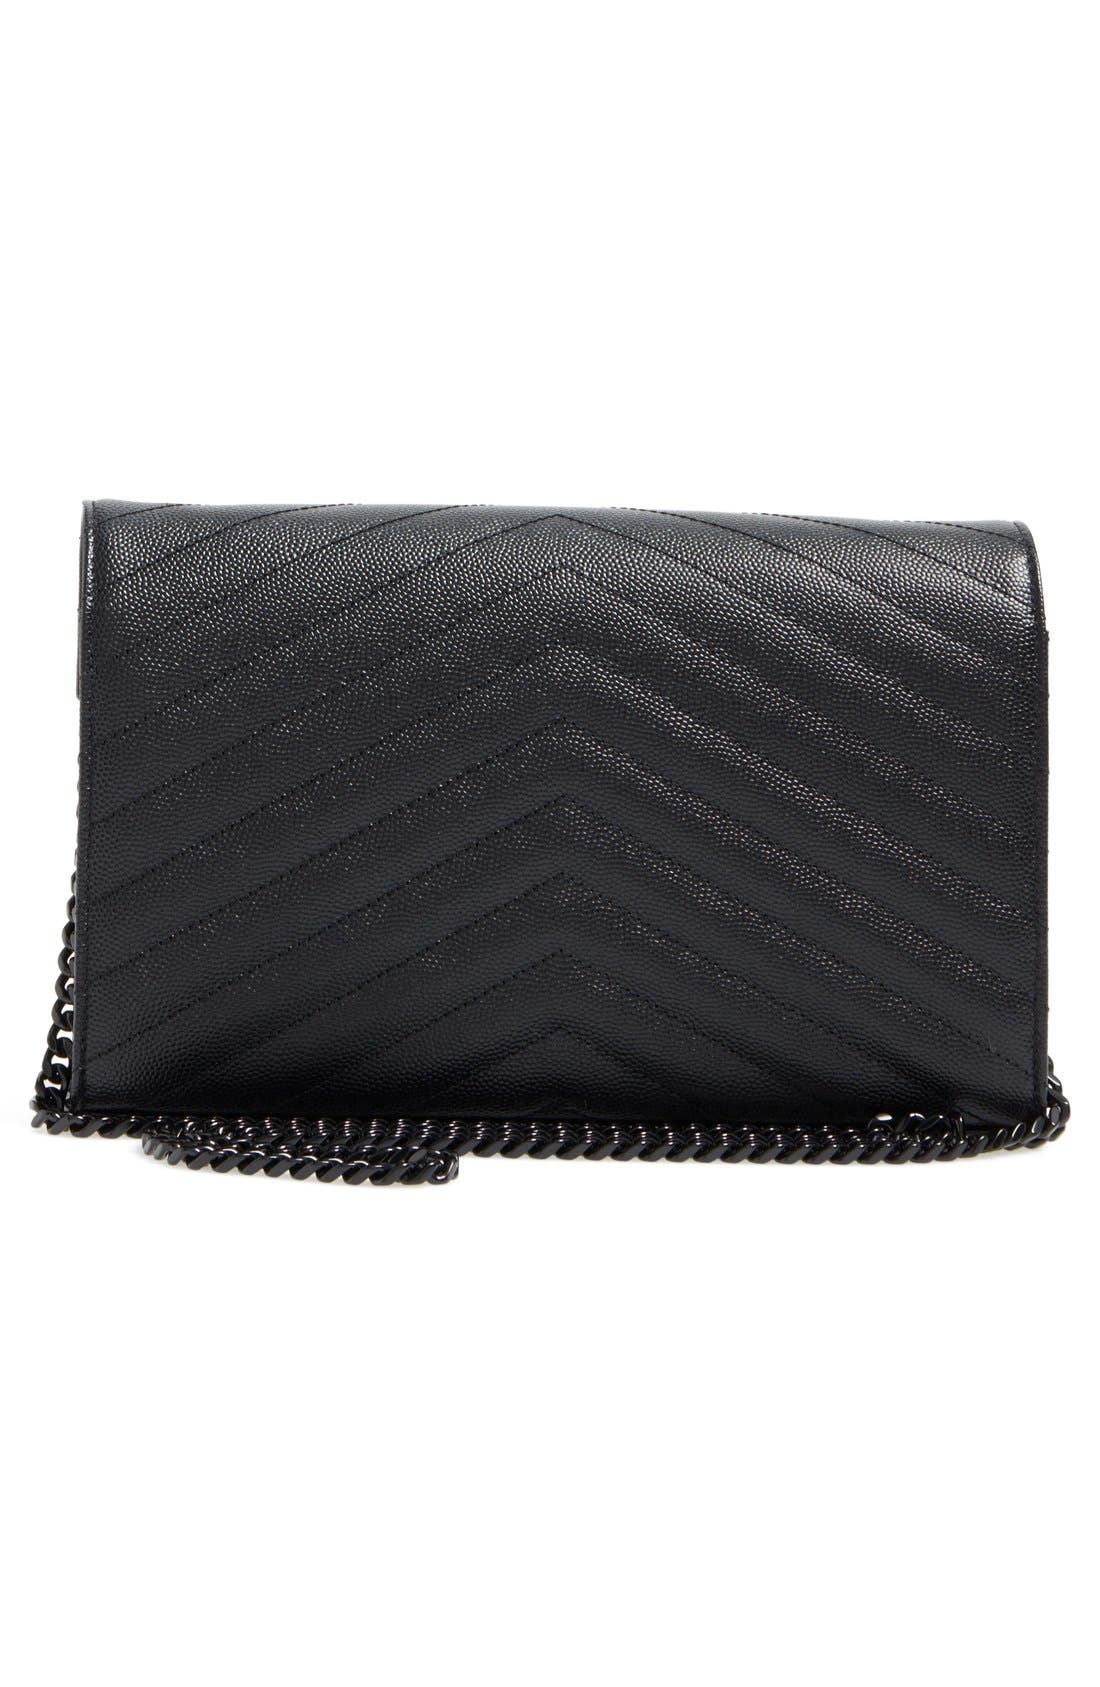 Alternate Image 3  - Saint Laurent Monogram Quilted Leather Wallet on a Chain